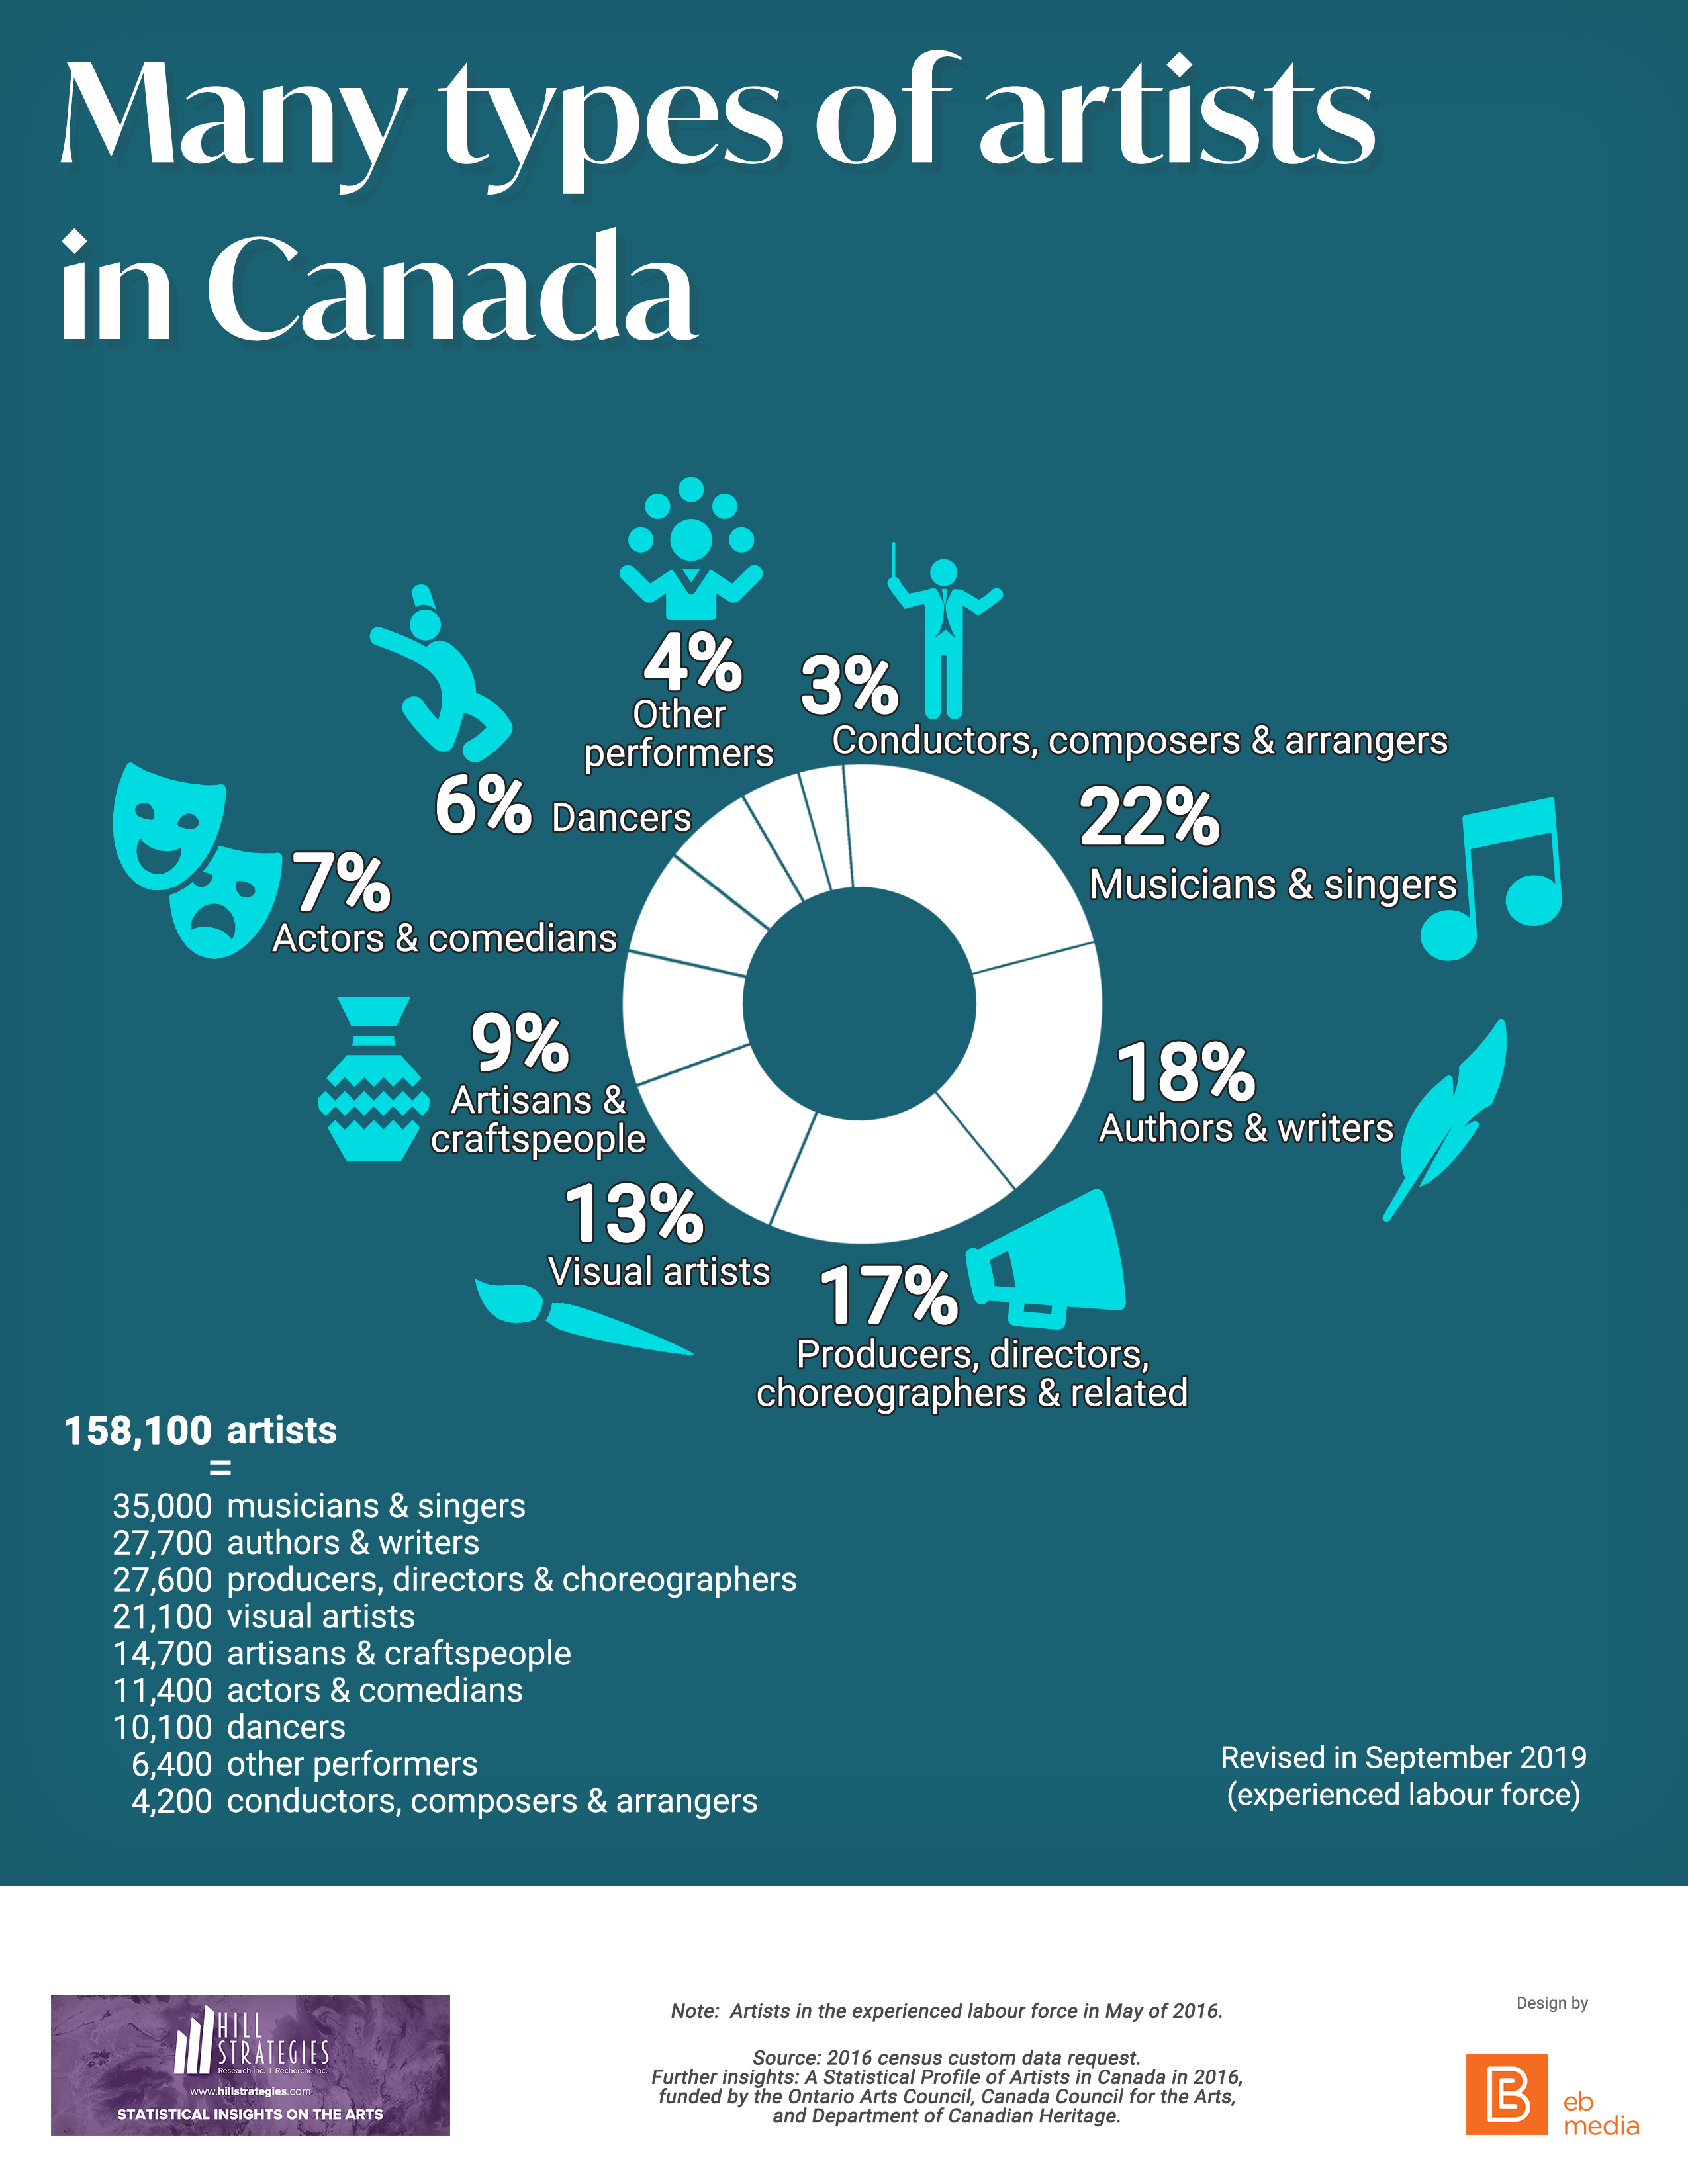 Many types of artists in Canada